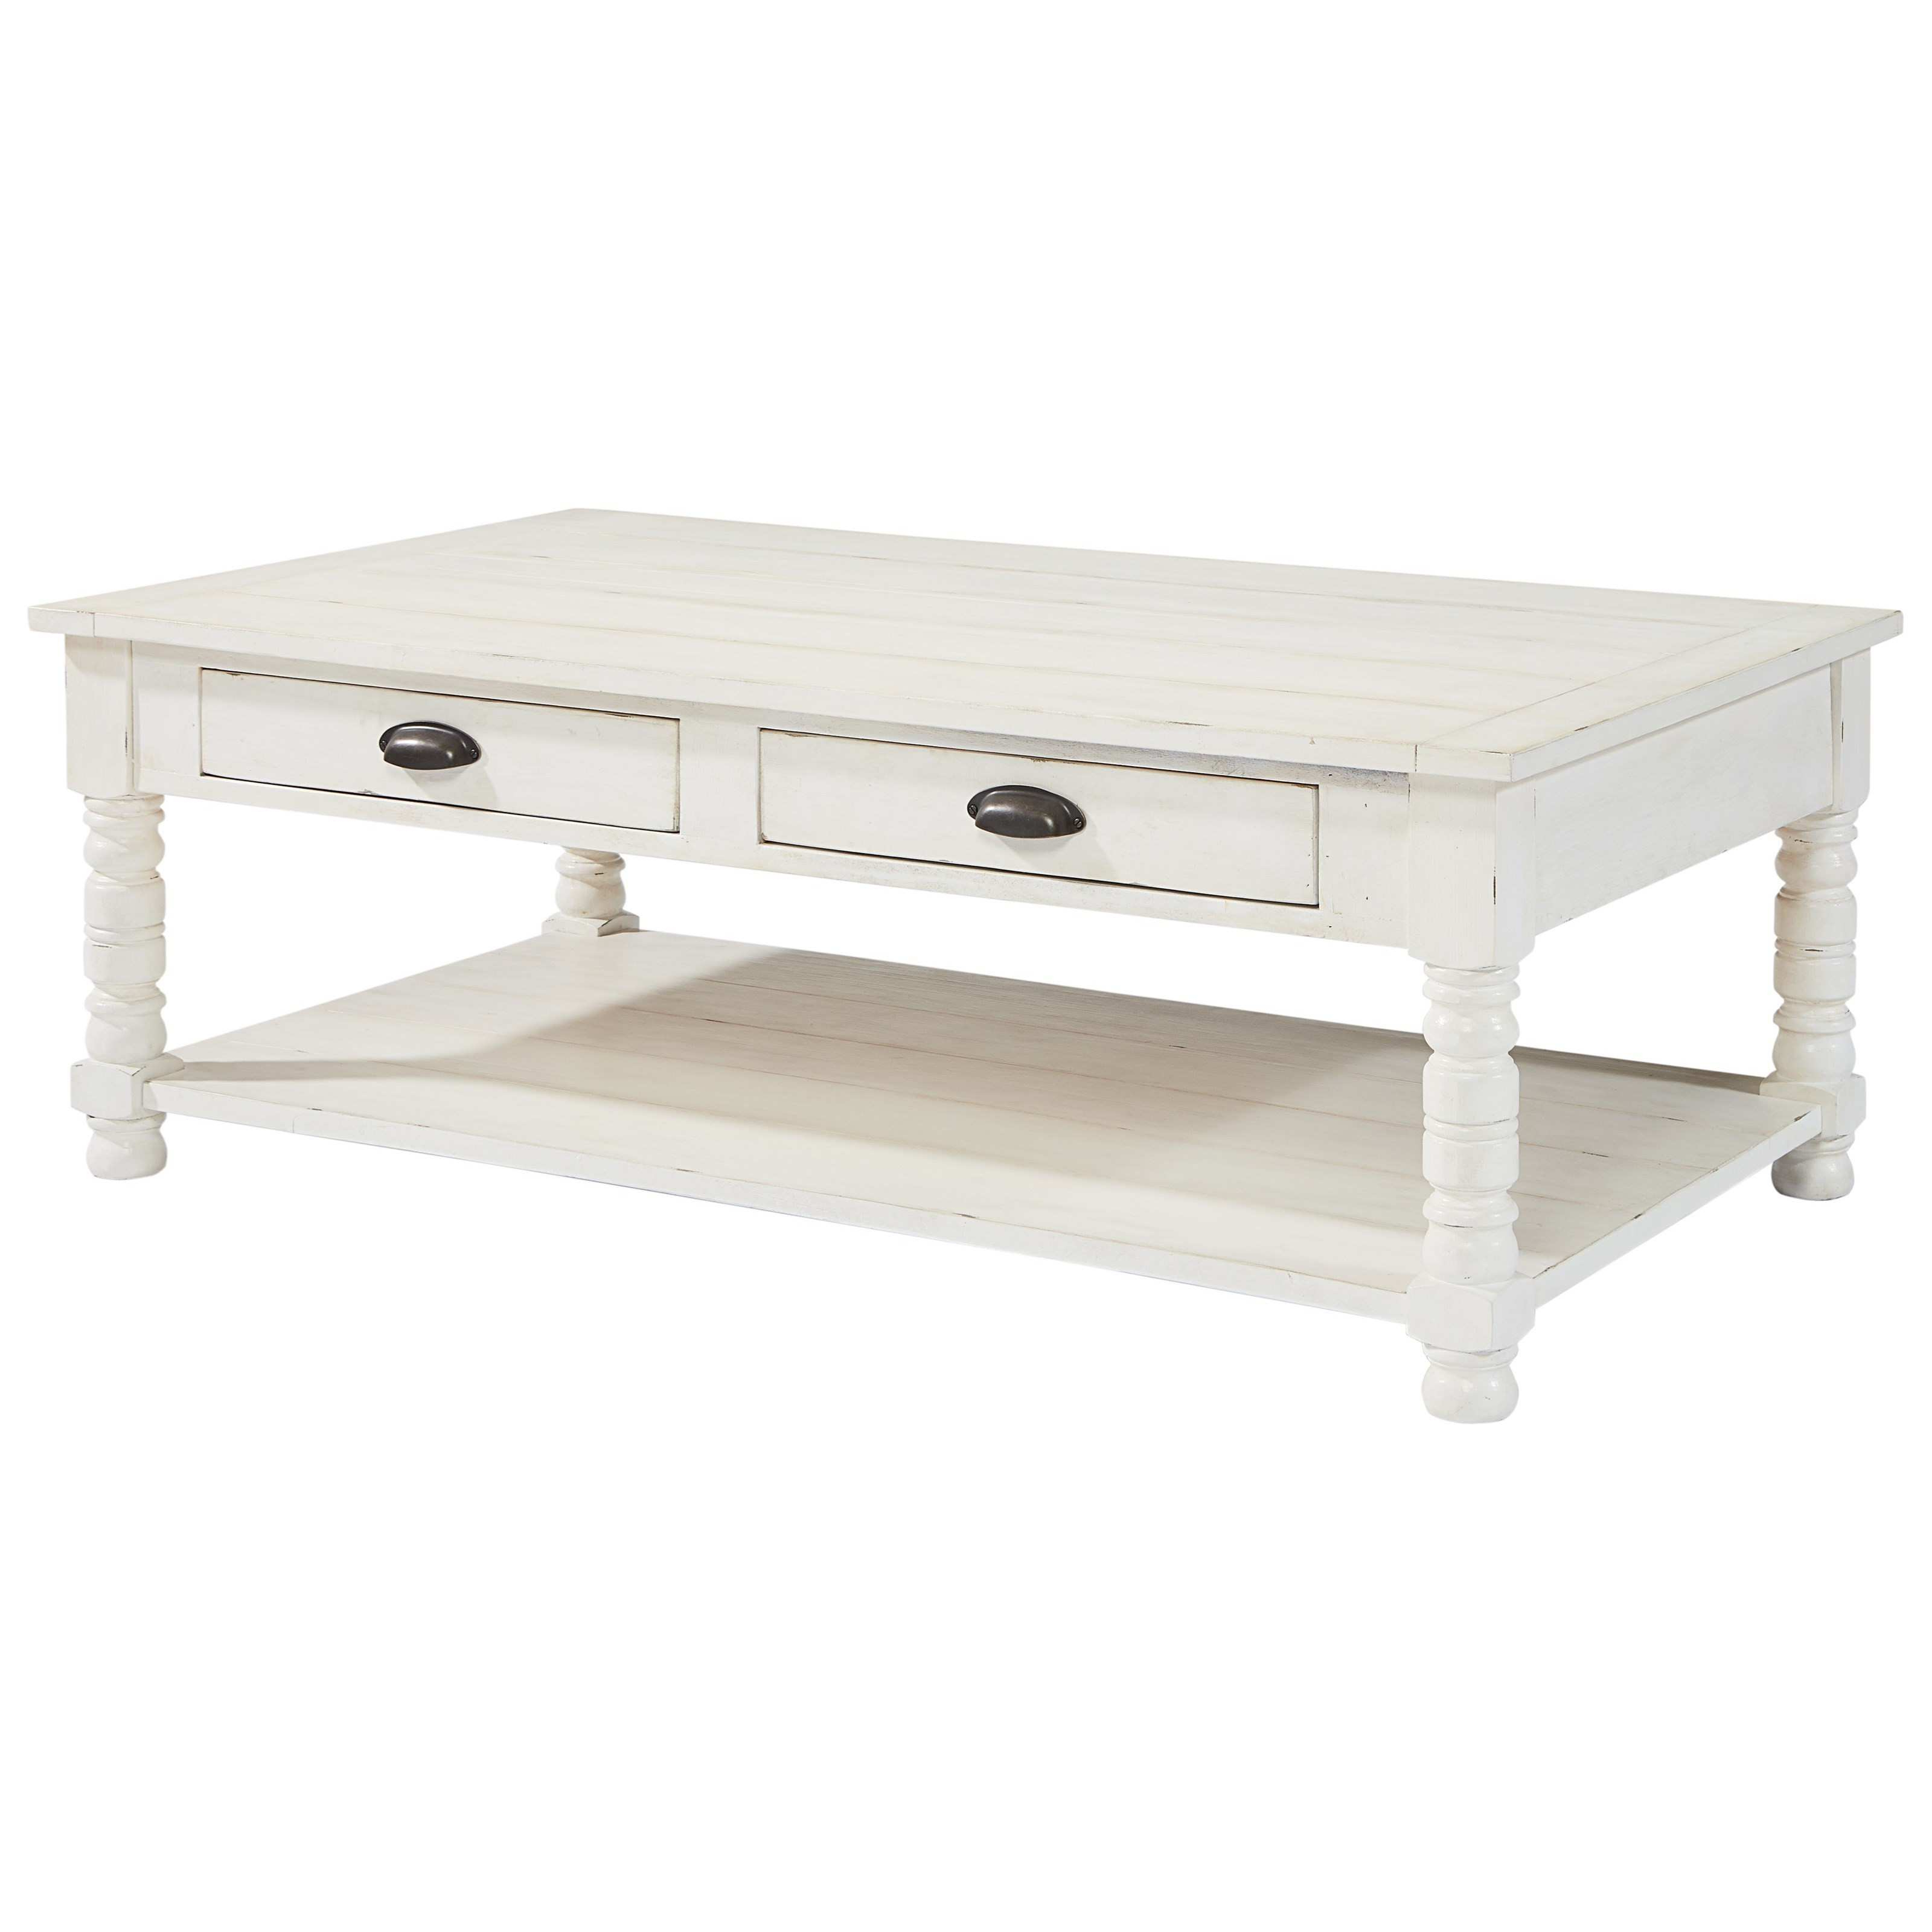 Amazing Magnolia Home Coffee Table For Magnolia Home Farmhouse Within Well Known Magnolia Home Ellipse Cocktail Tables By Joanna Gaines (View 17 of 20)